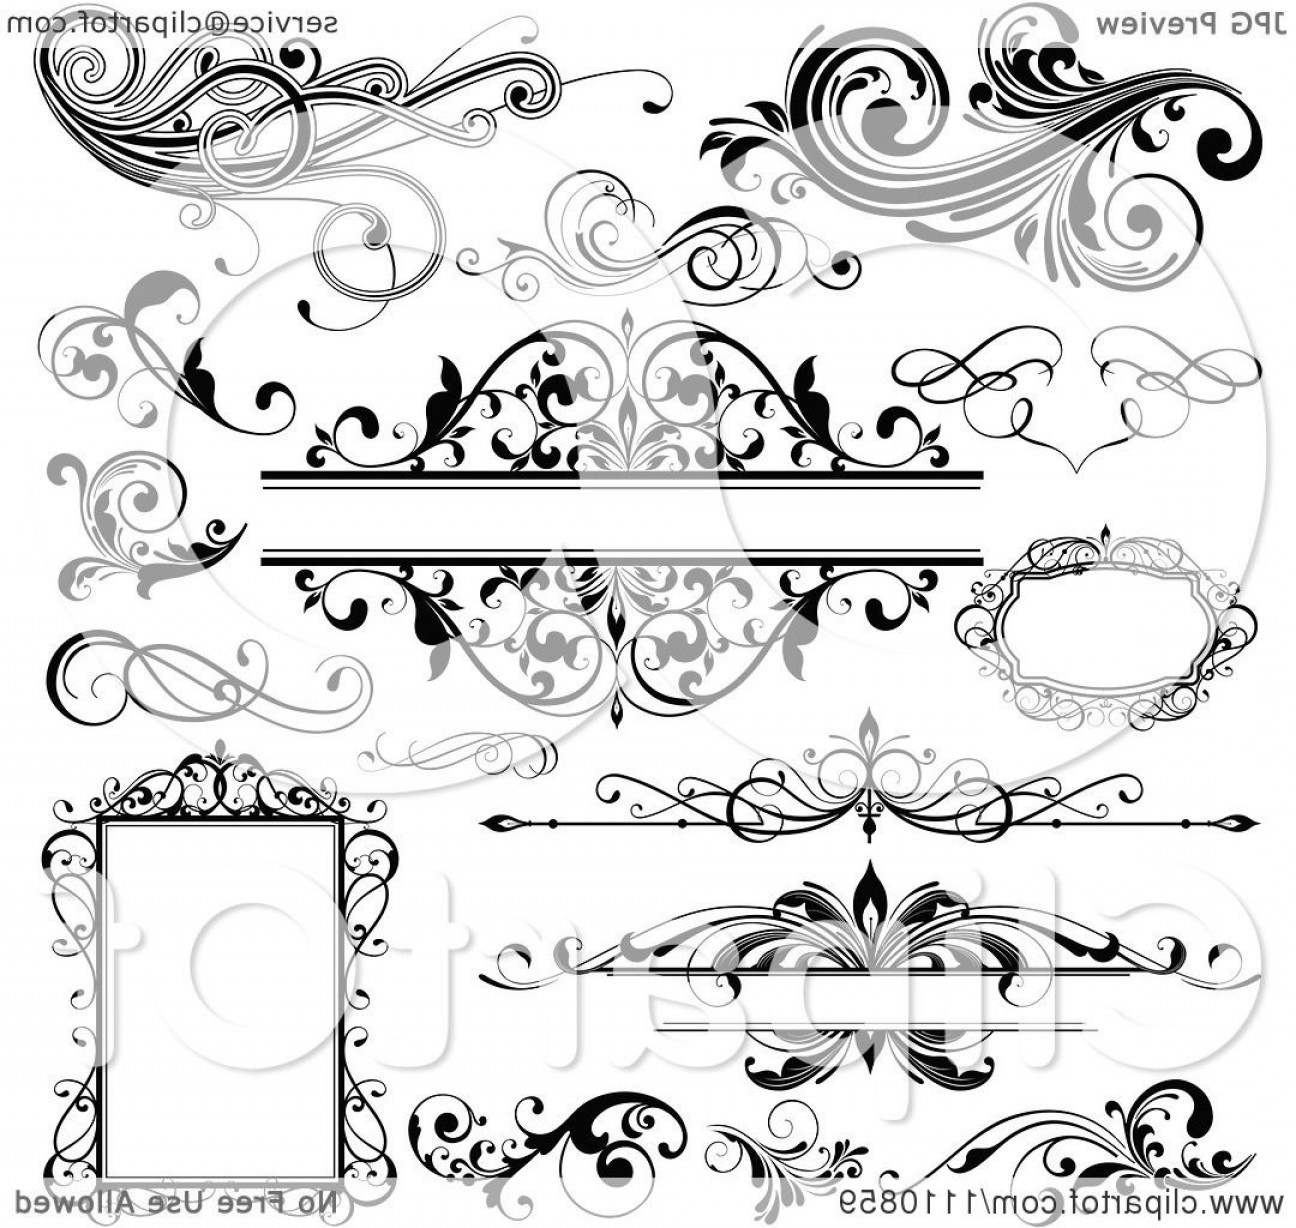 Free Flourish Frame Vector: Black And White Design Elements Frames And Flourishes